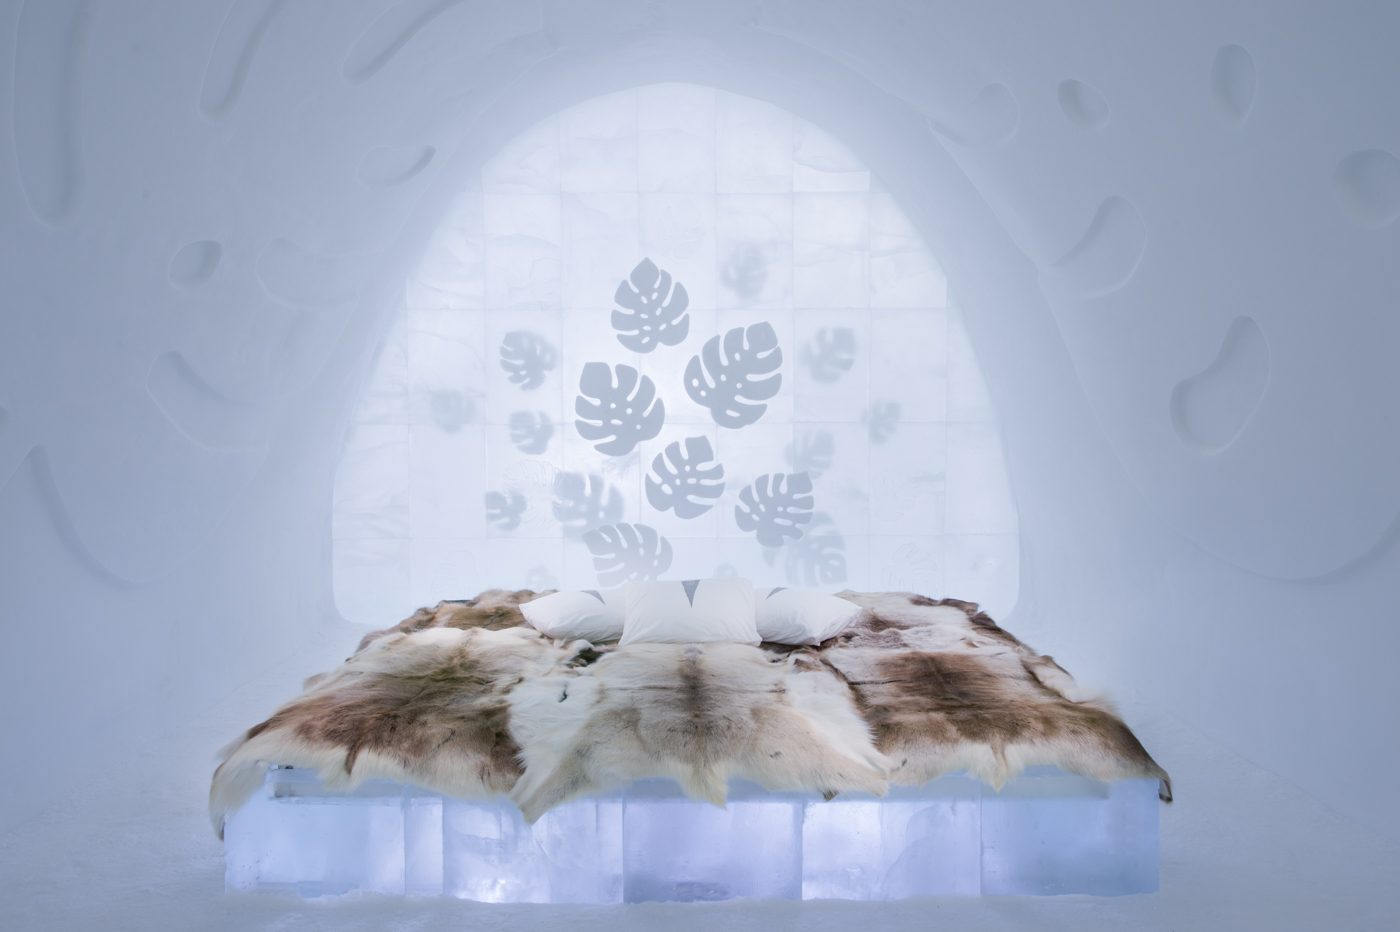 art-suite-monstera-icehotel-28-1400x932